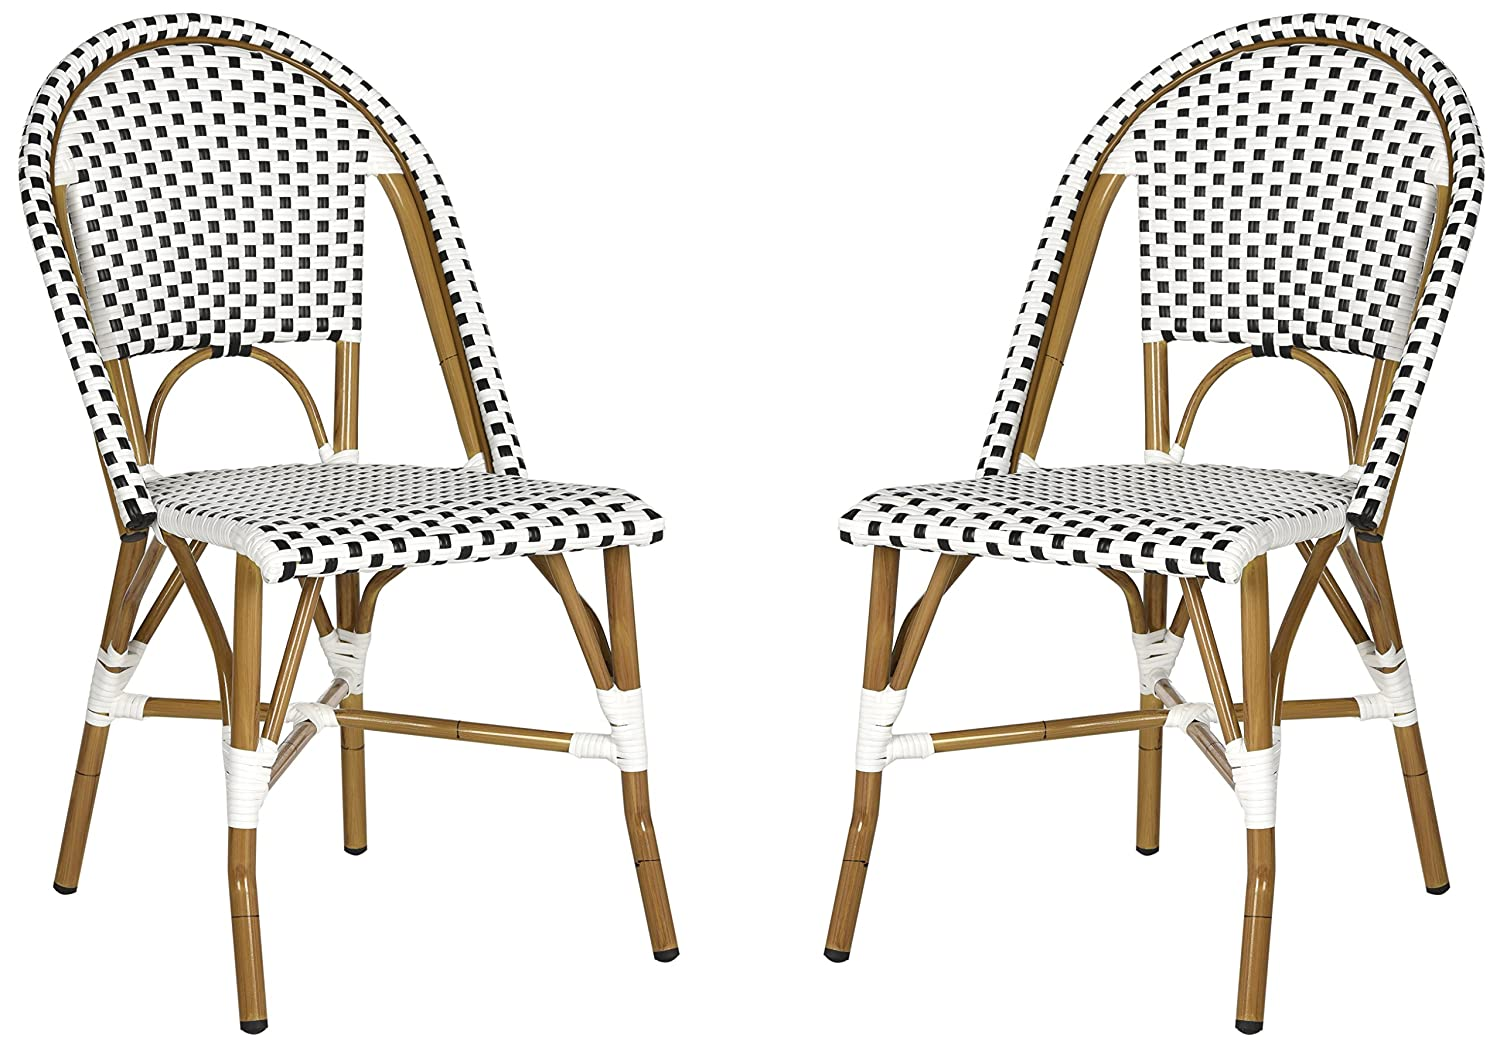 Black and white Hooper bistro chairs